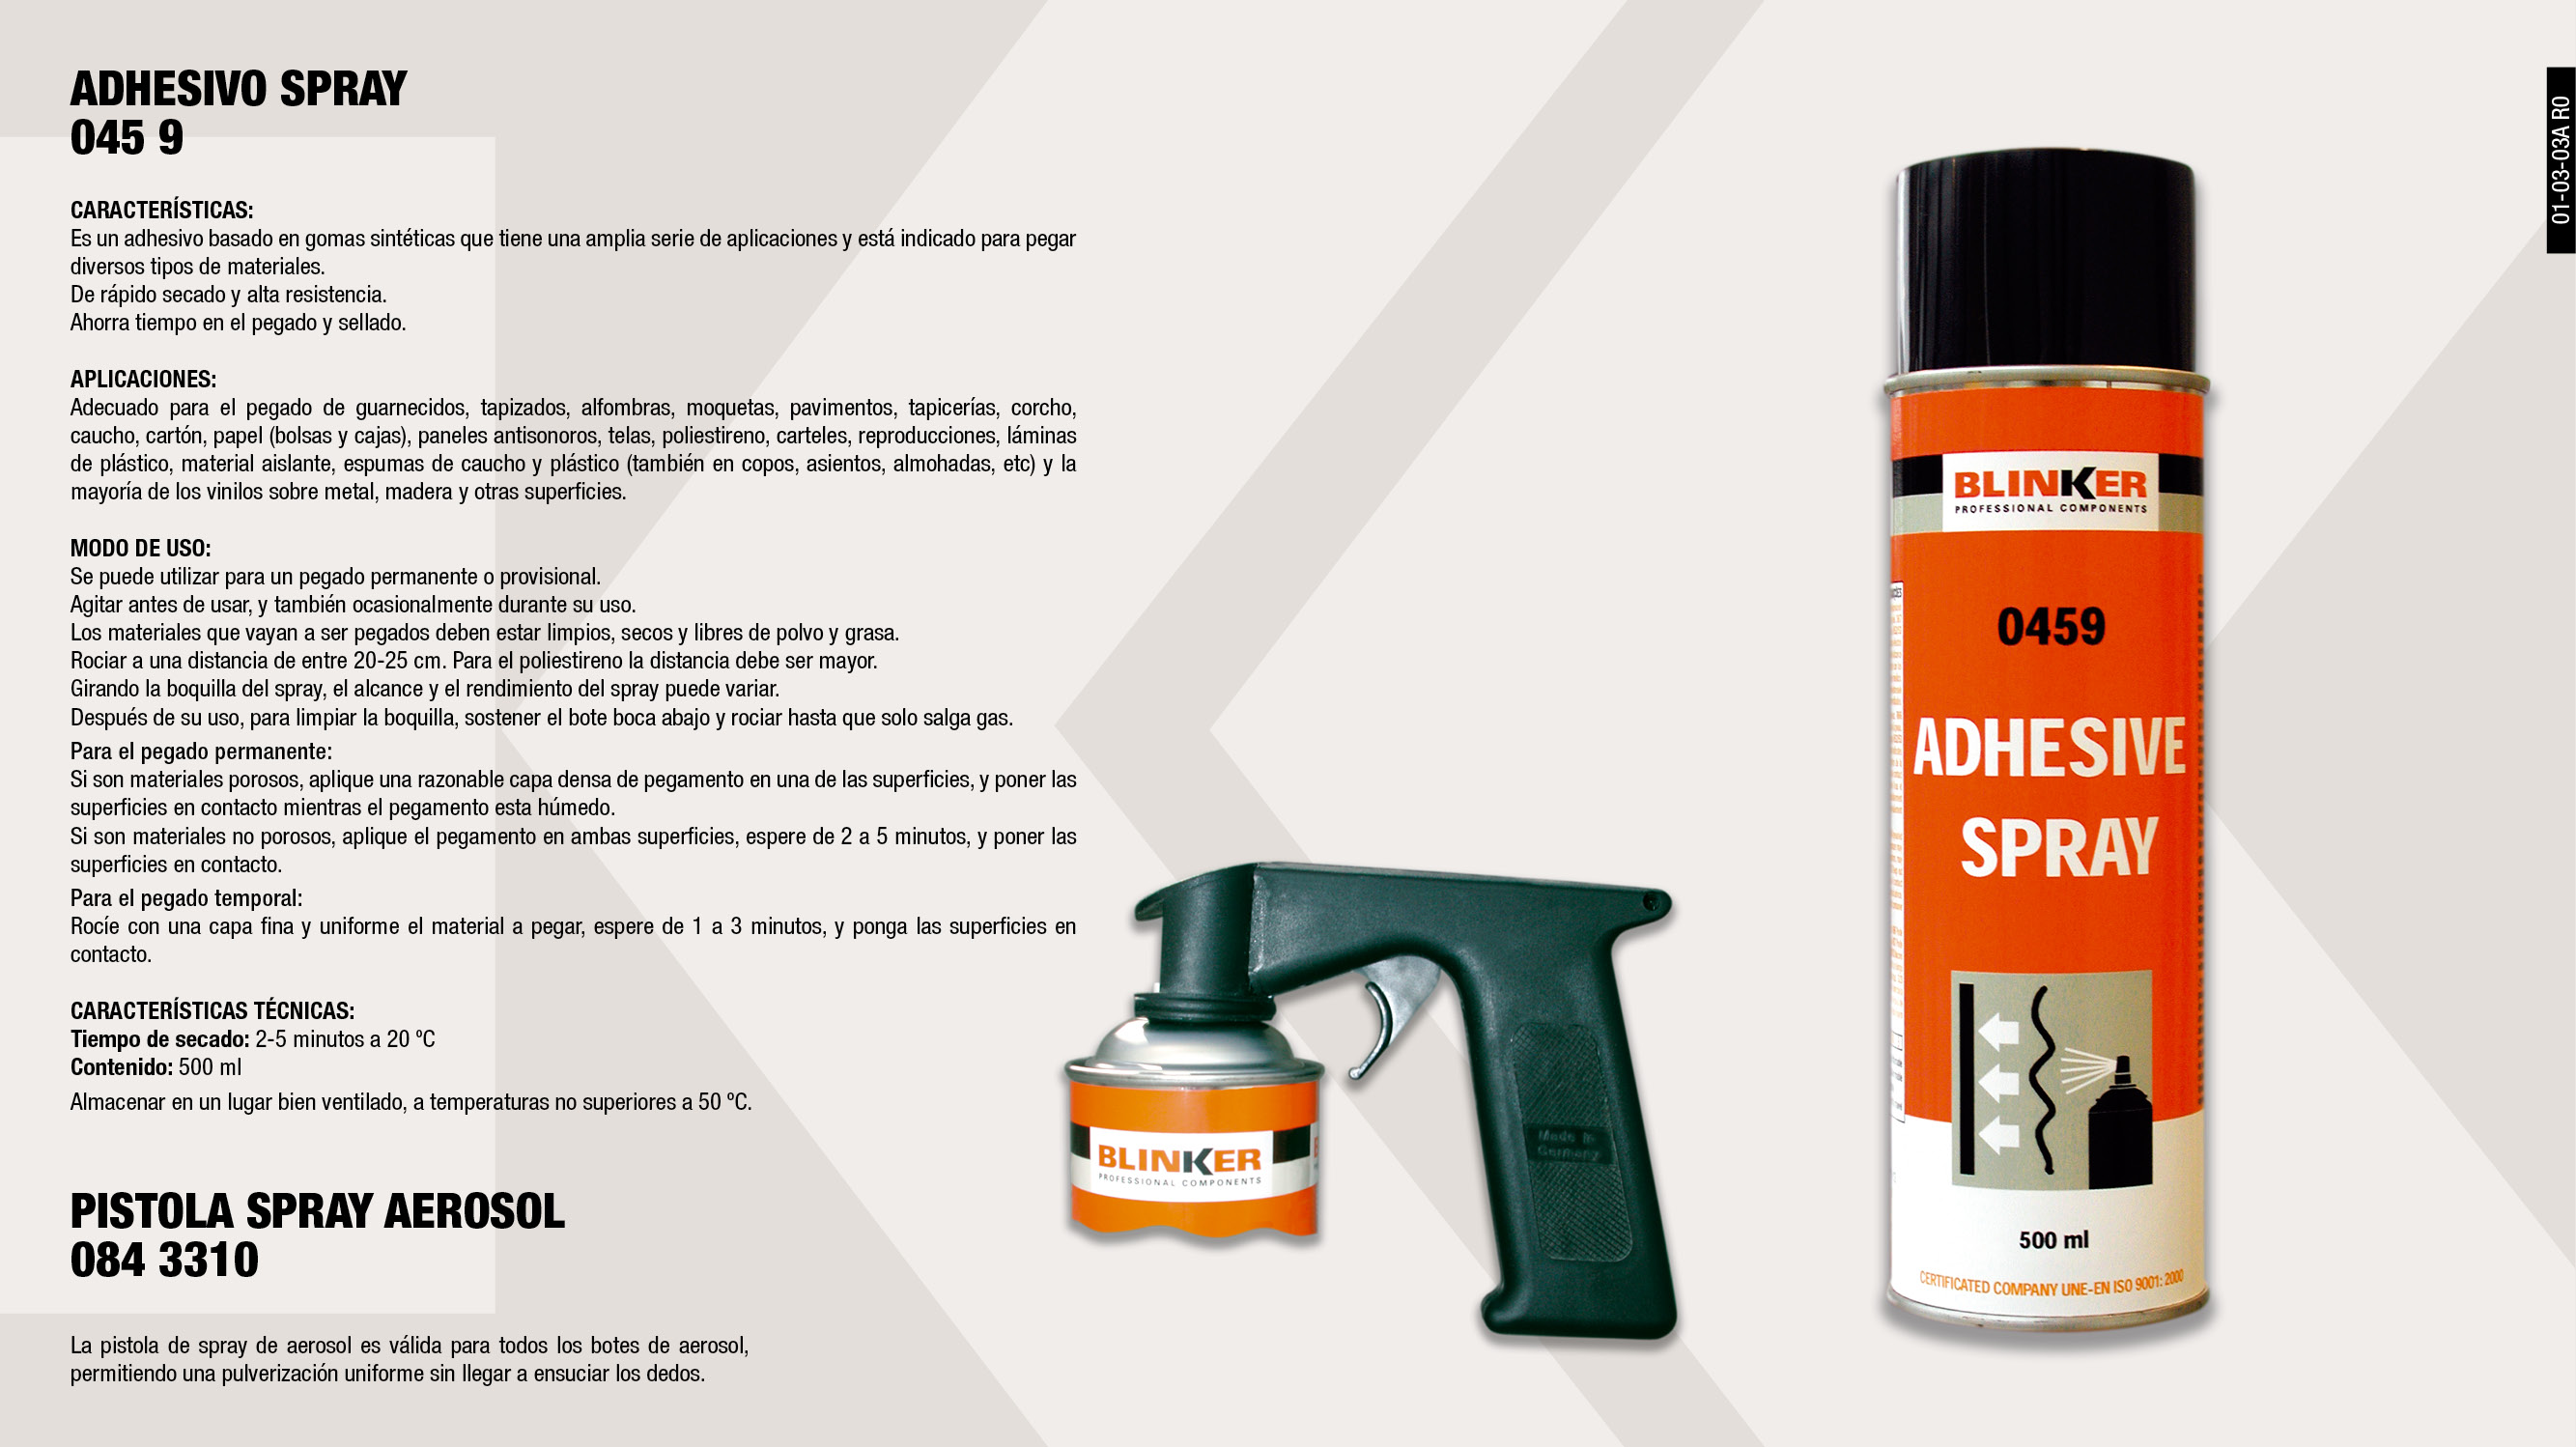 ADHESIVO SPRAY BLINKER 500ML.                               ,  									PISTOLA SPRAY AEROSOL                                       ,